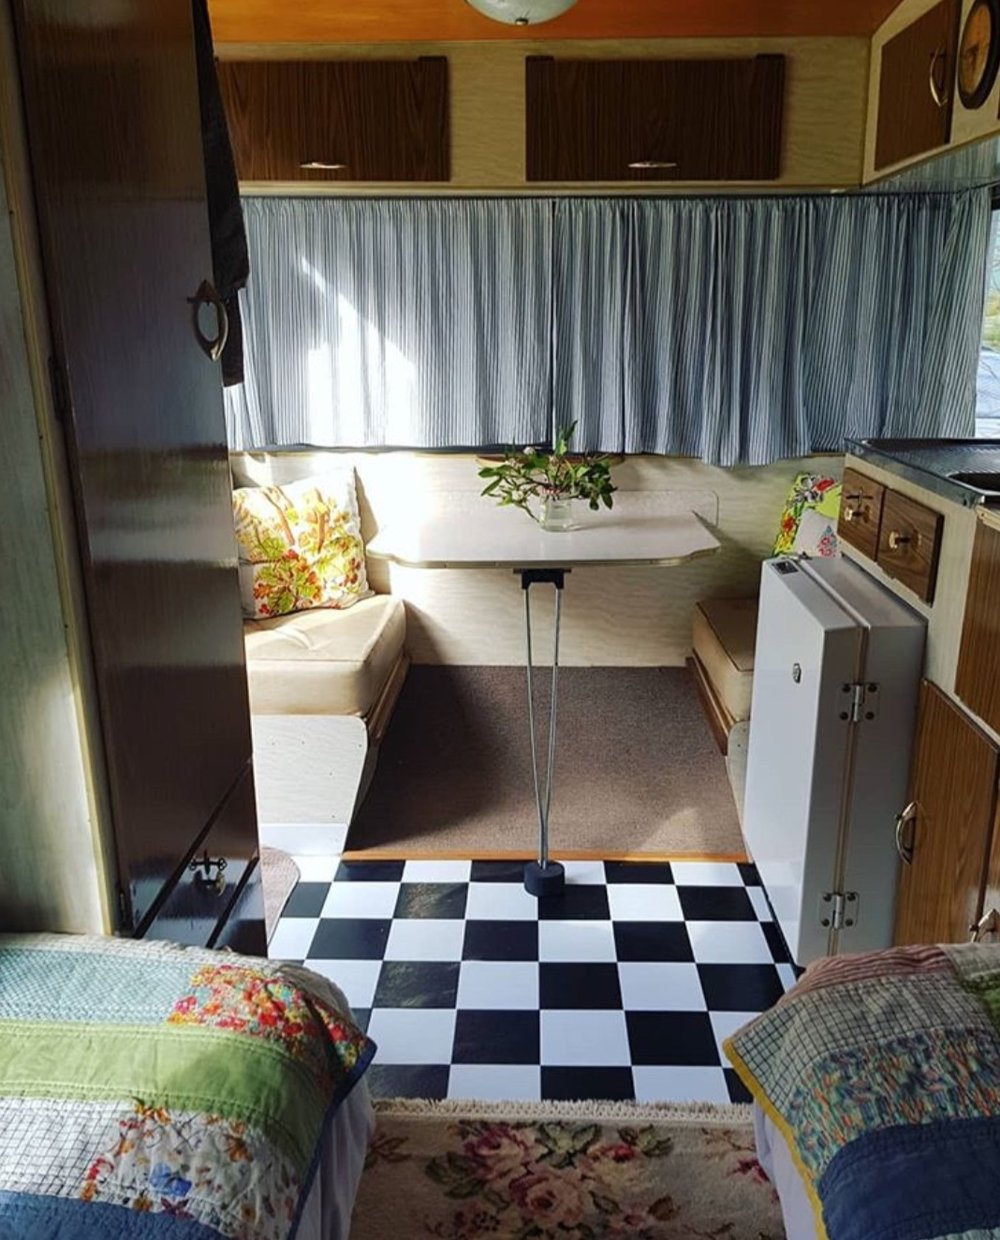 Quilts feature in the family caravan, too.